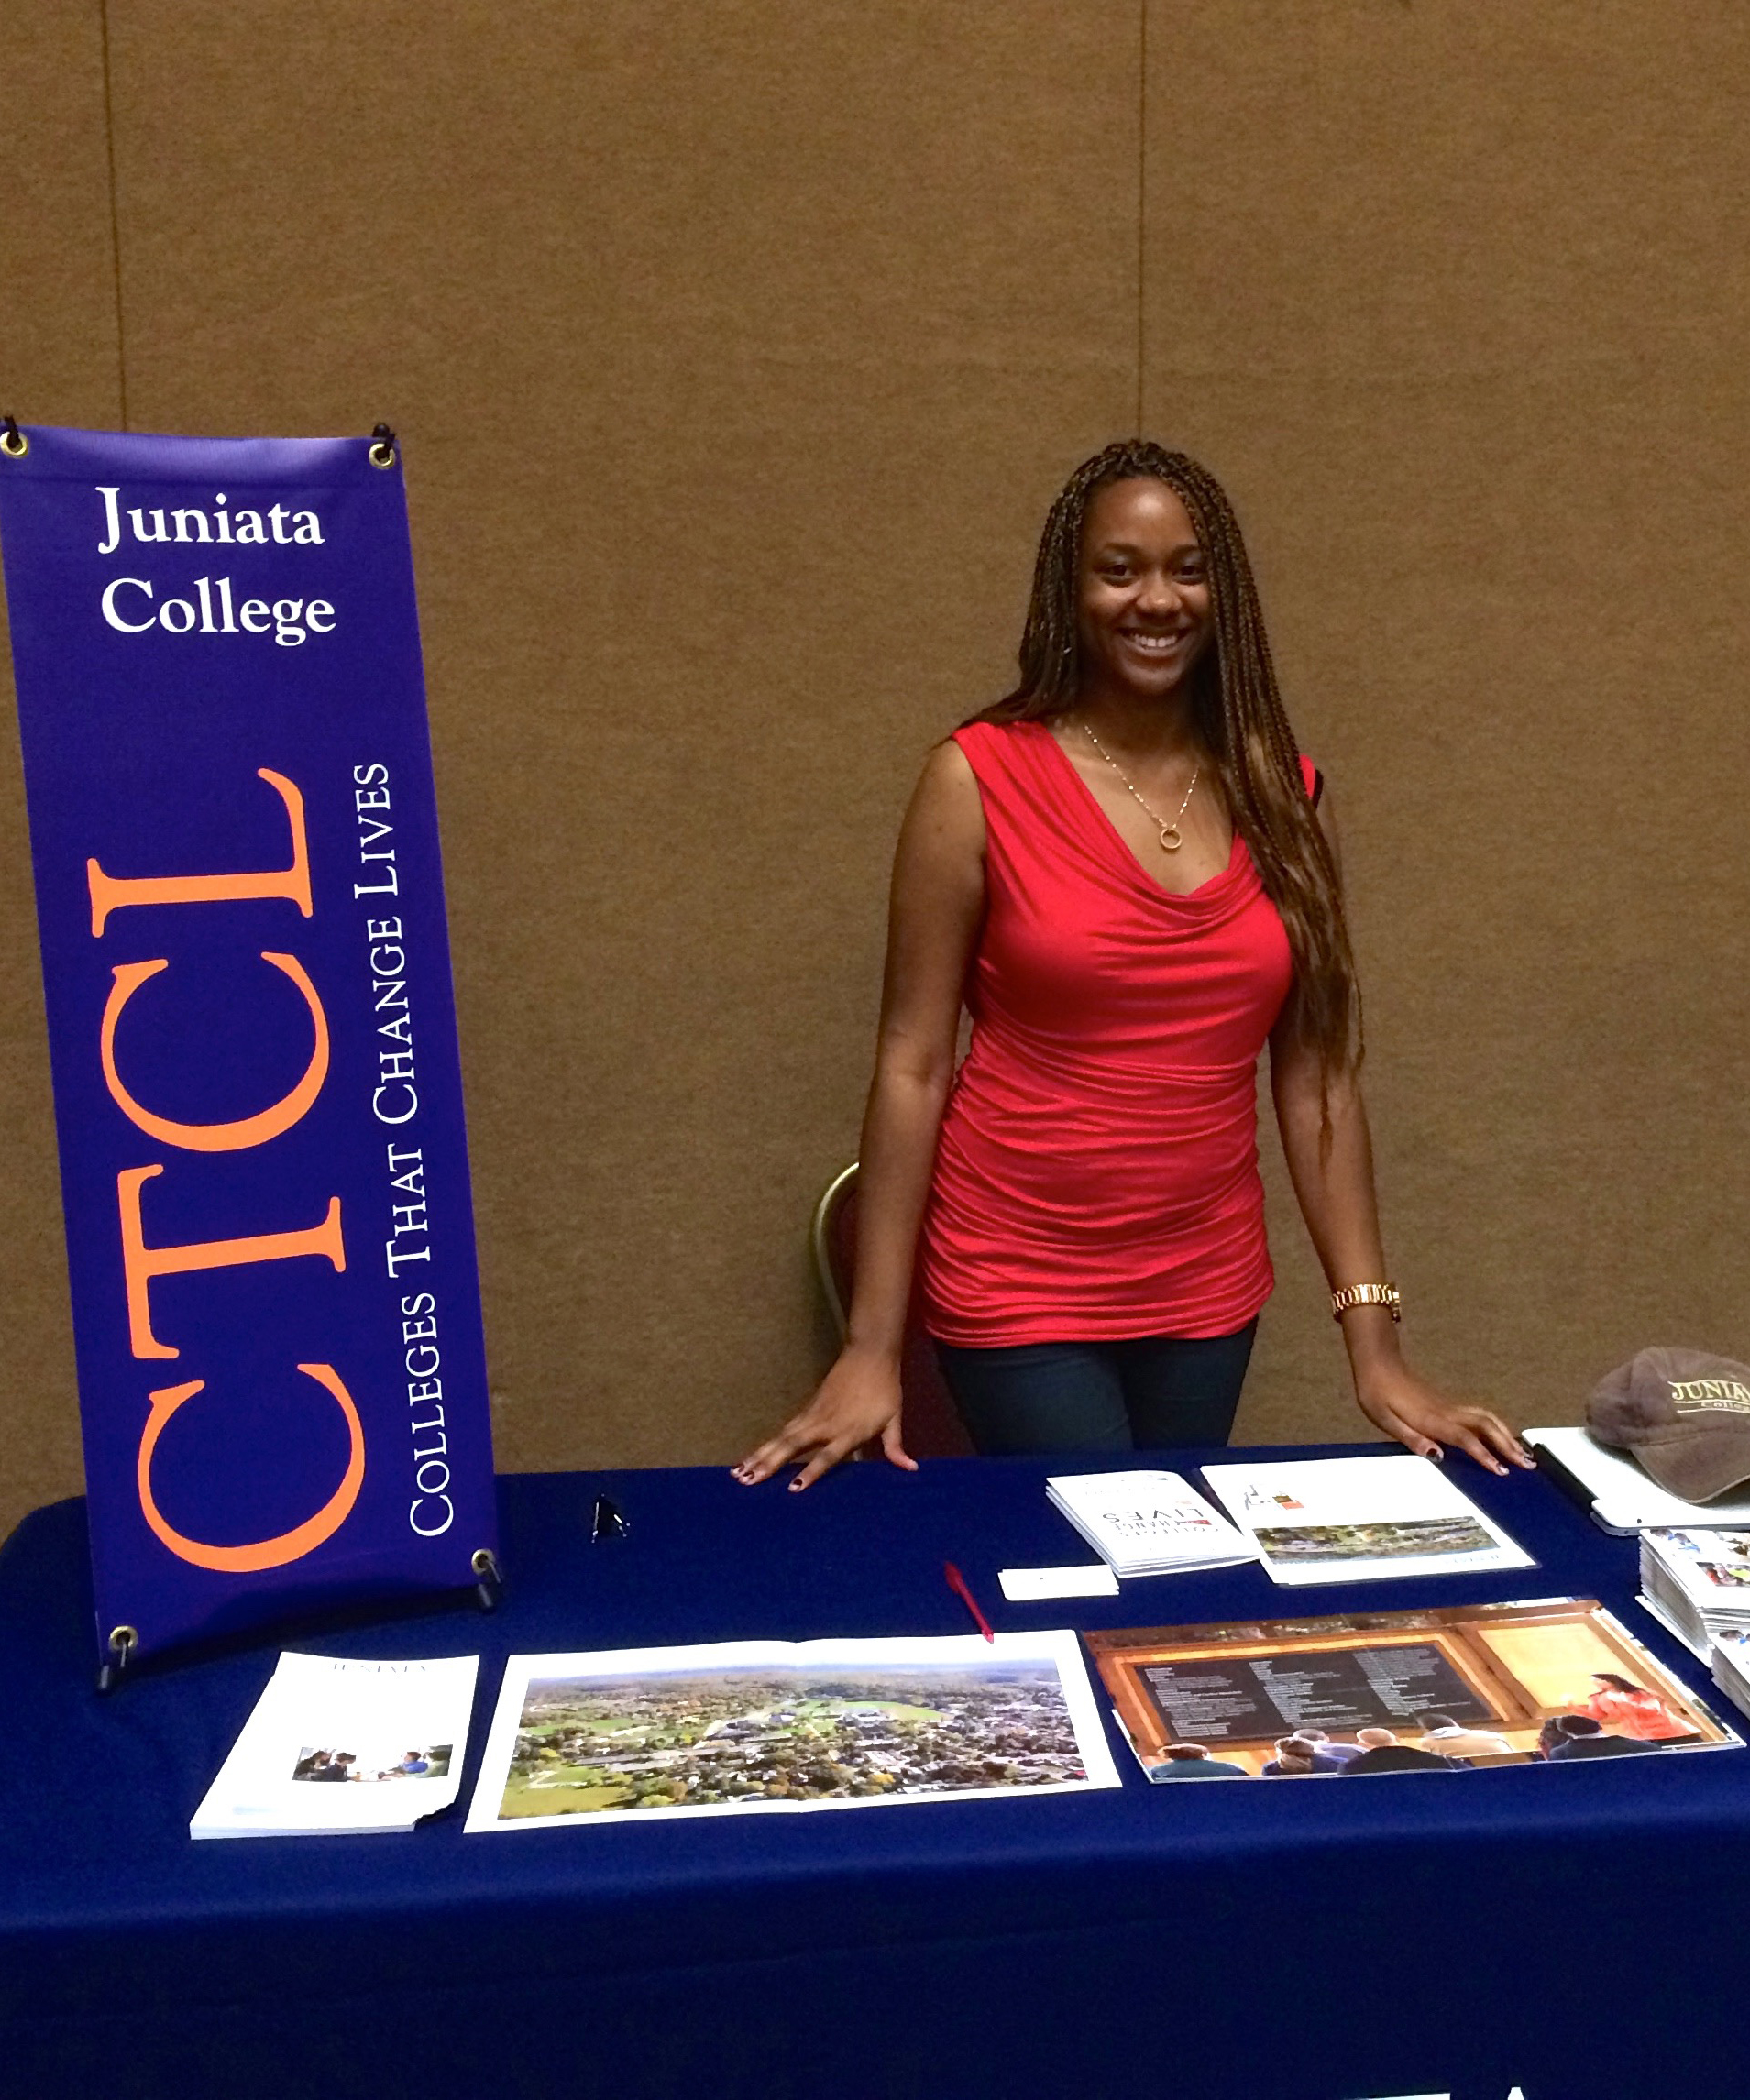 Skakura Woods representing Juniata College at a College Fair